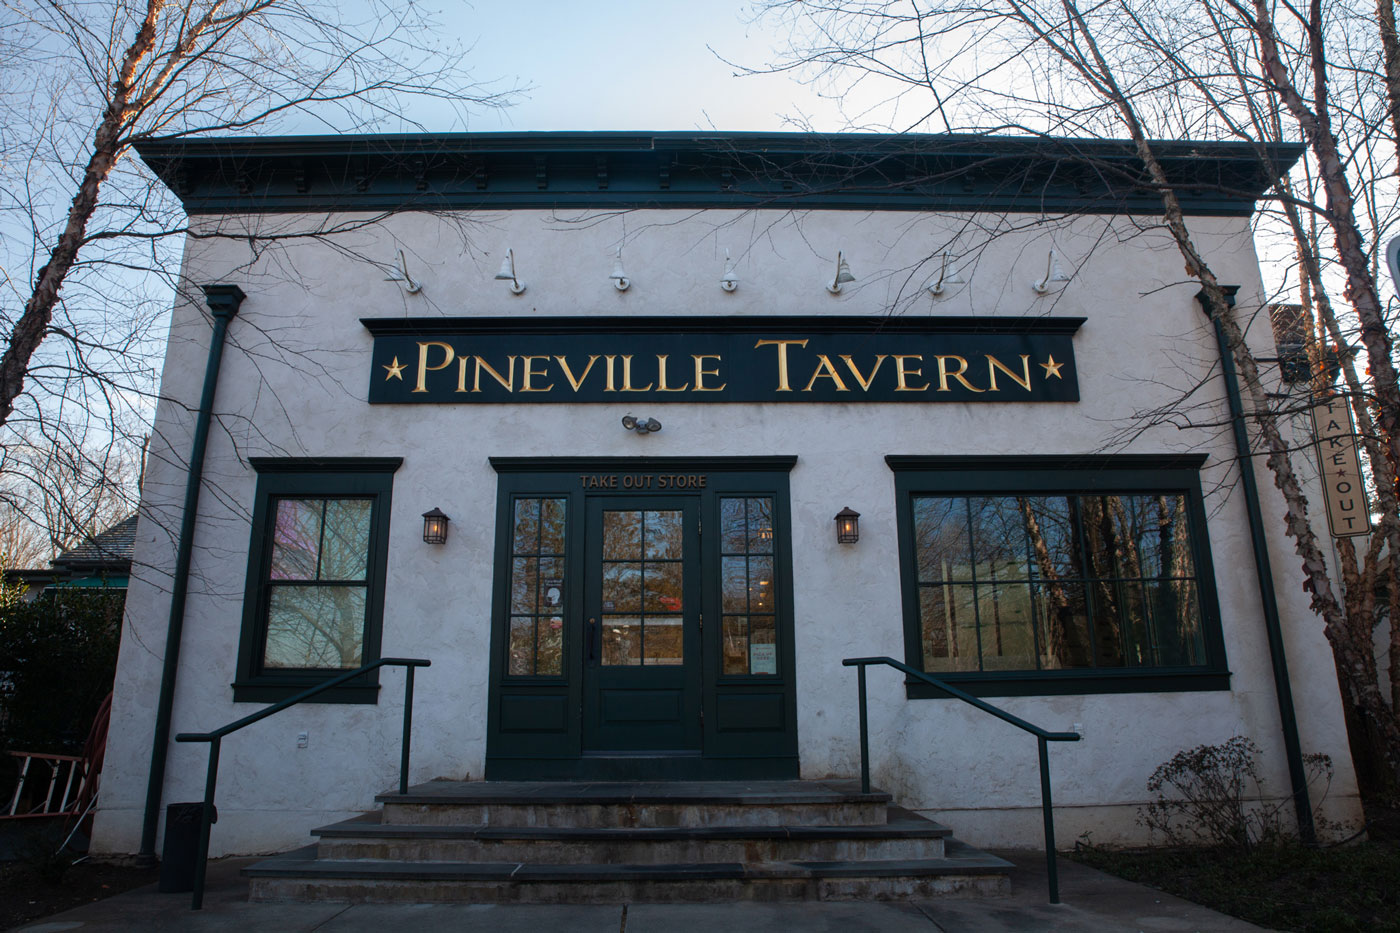 The front entry of the Pineville Tavern.